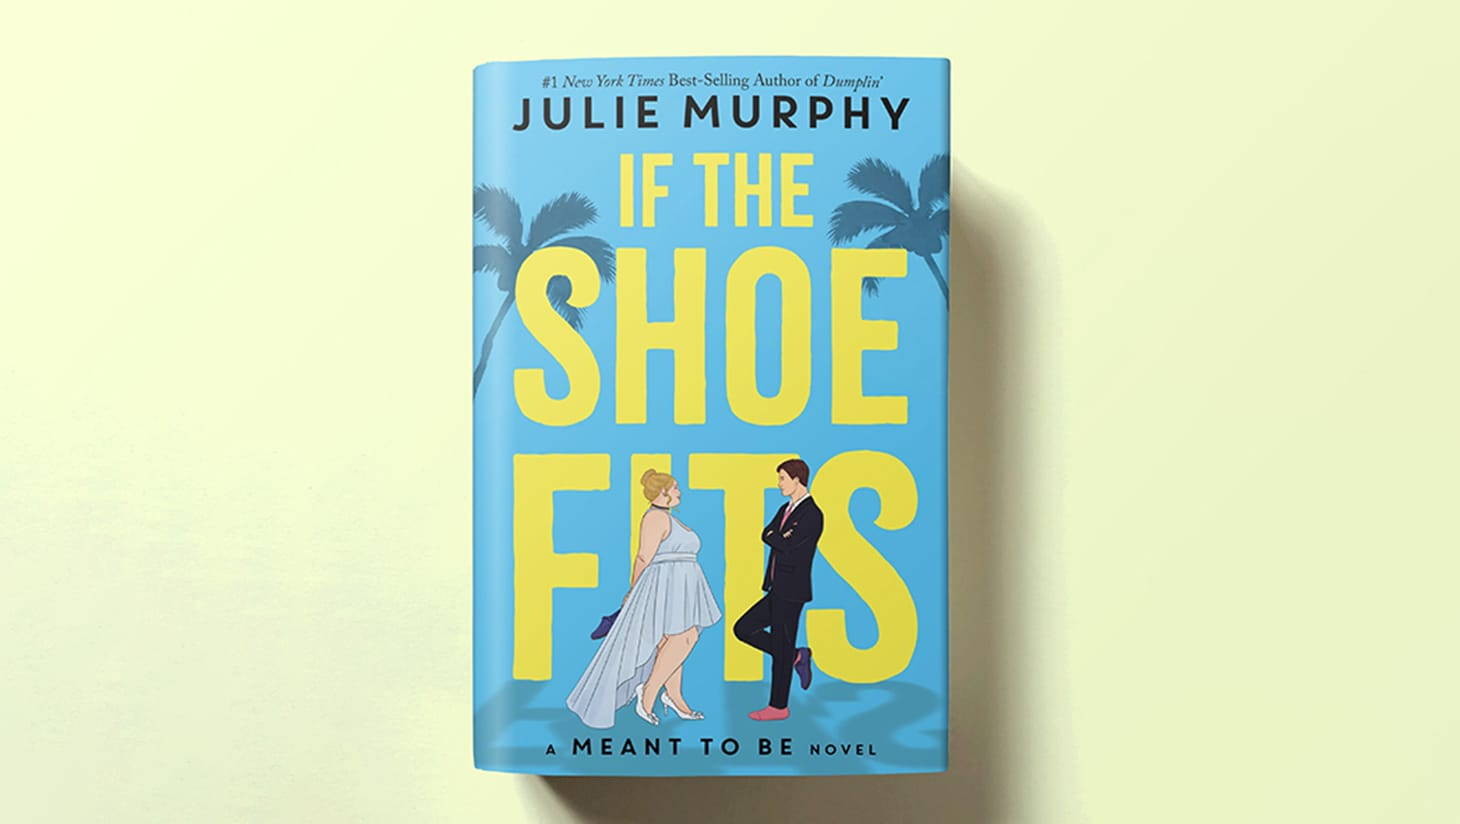 If the Shoe Fits by Julie Murphy - Book Cover